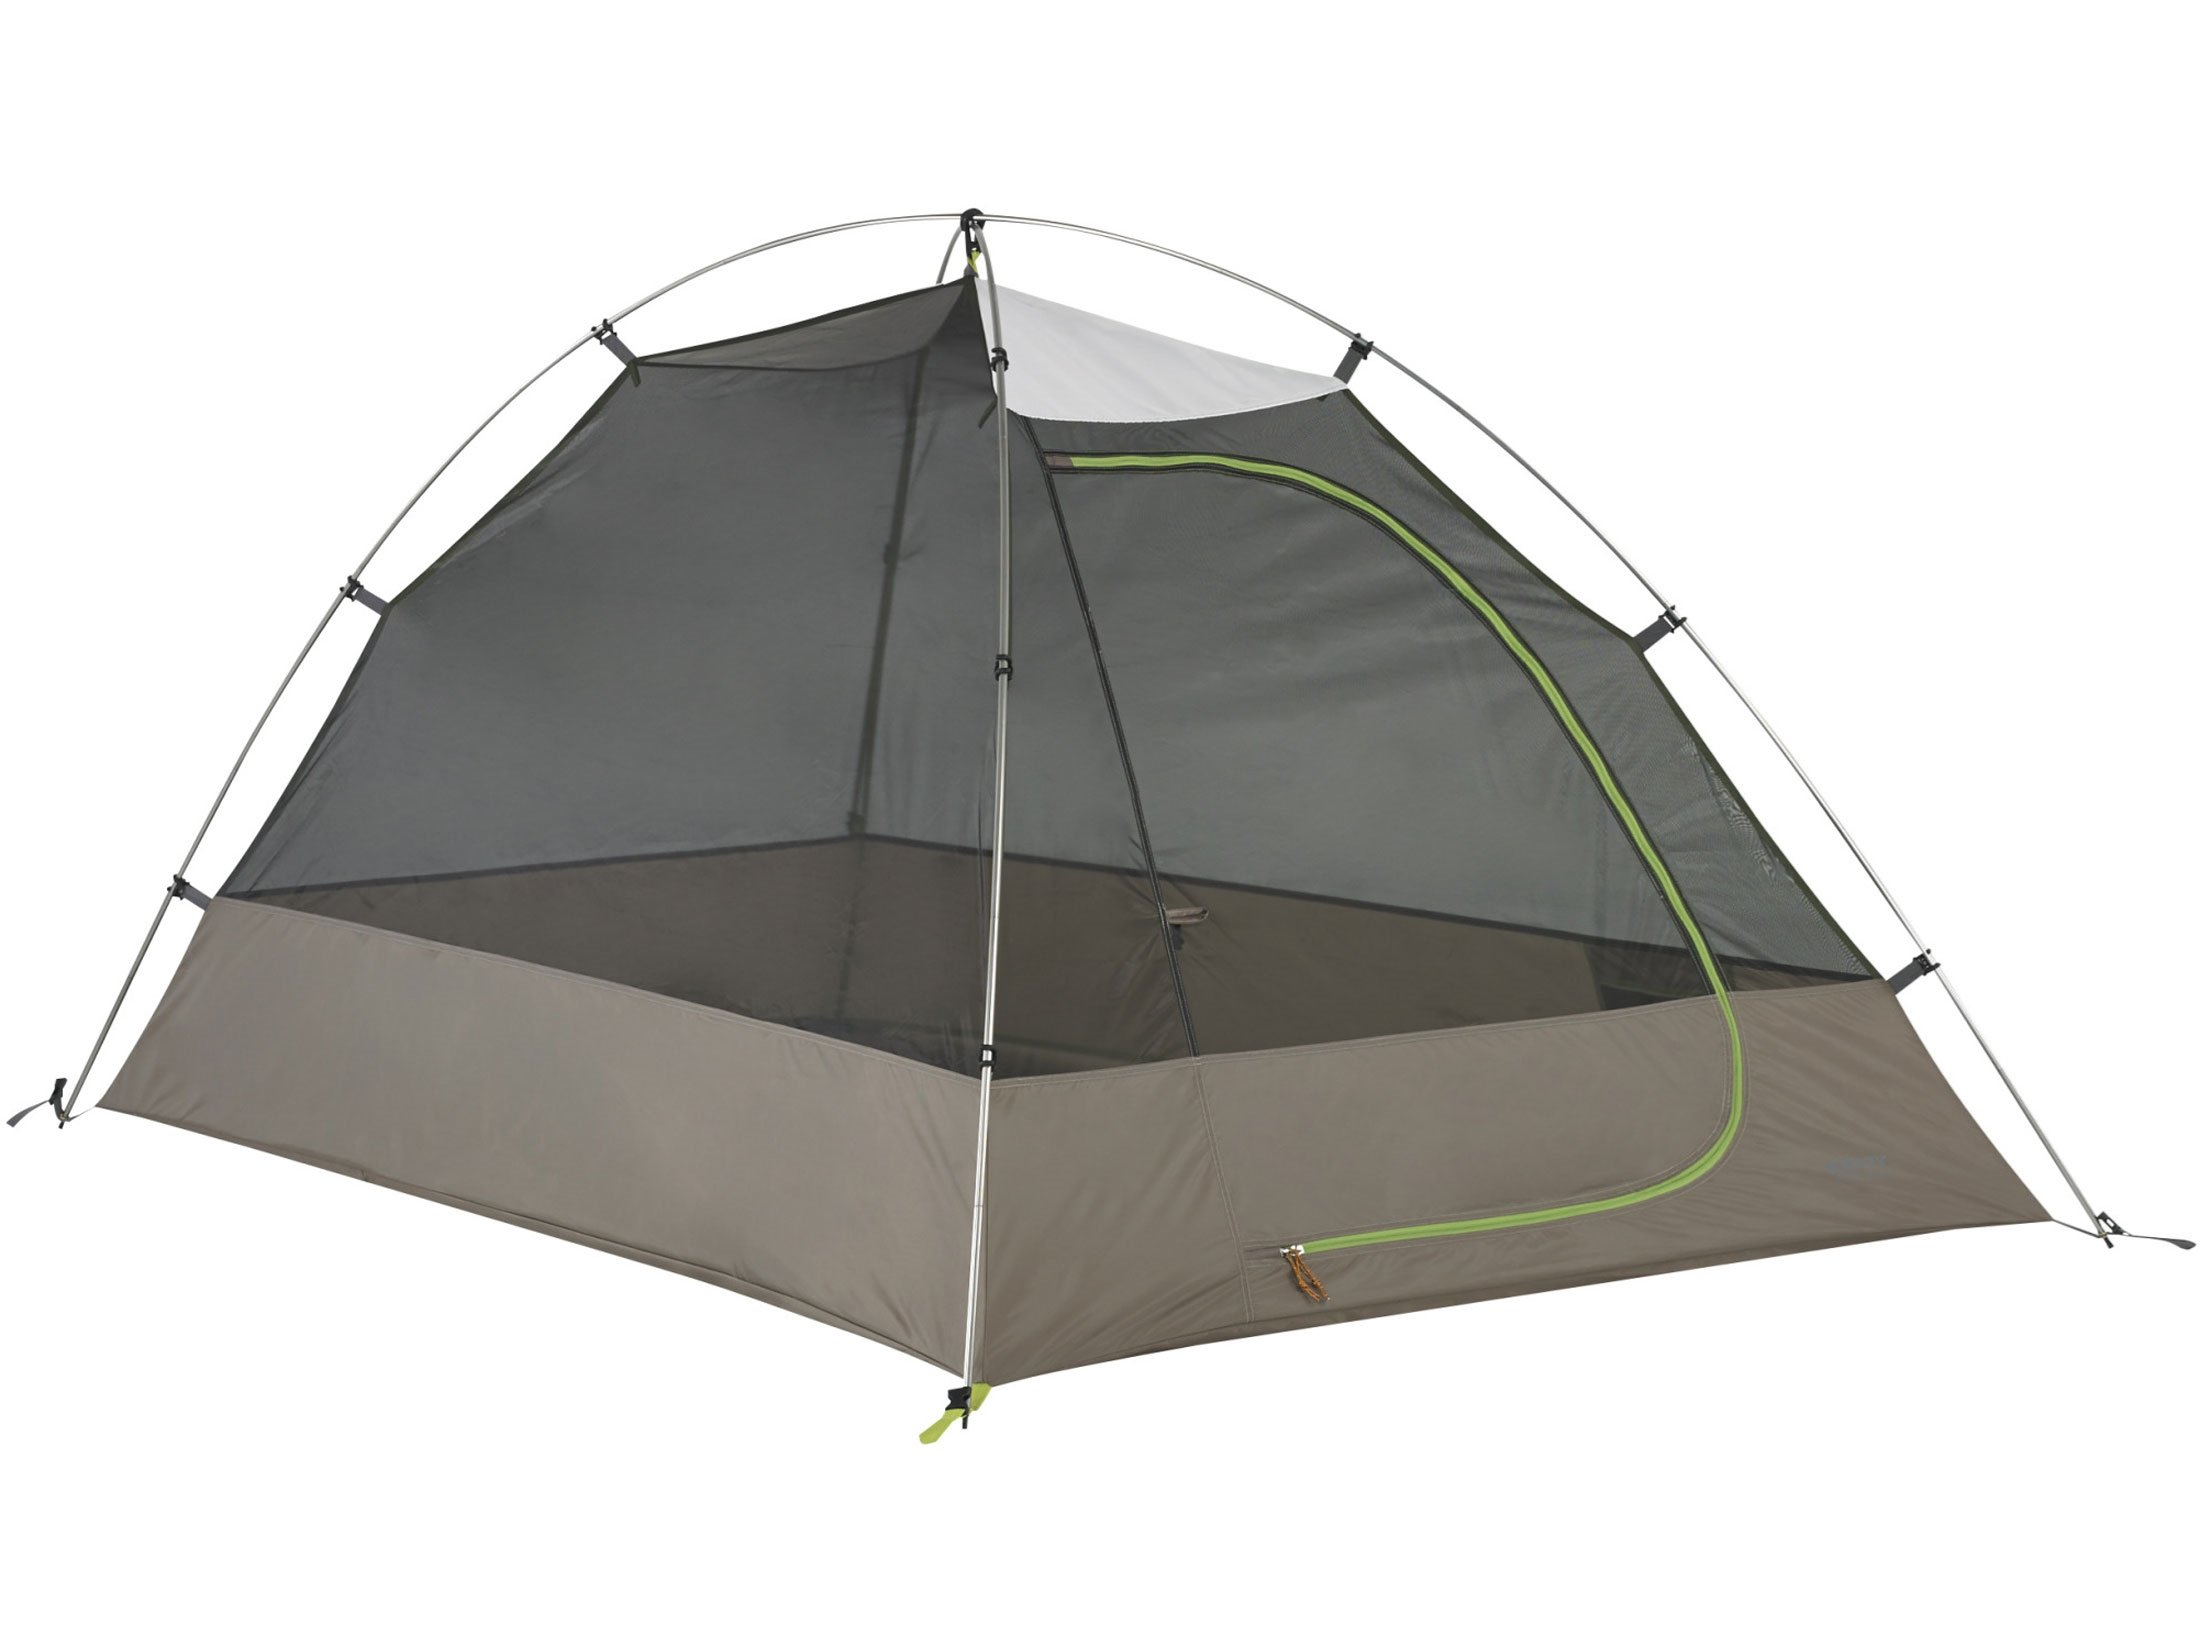 Kelty Grand Mesa 2 Person Dome Tent 82'' x 58'' x 44'' Polyester White, Gray and Green